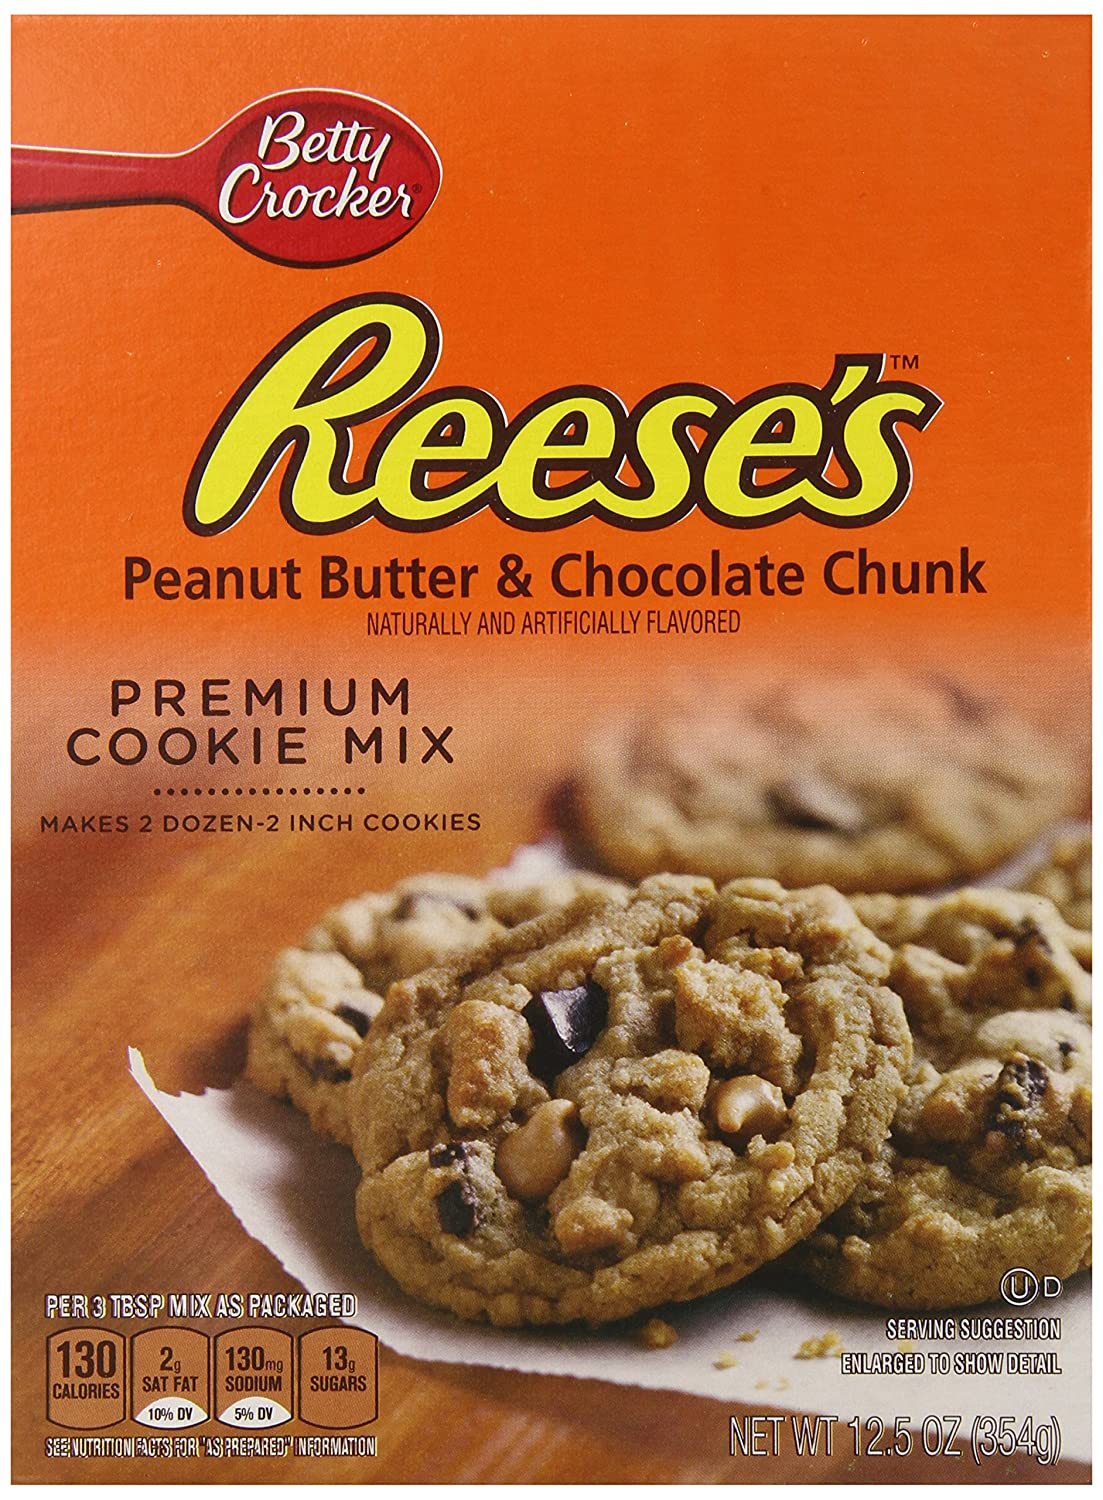 Betty Crocker Reeses Peanut Butter & Chocolate Chunk Premium Cookie Mix - 354 gr: Amazon.es: Alimentación y bebidas